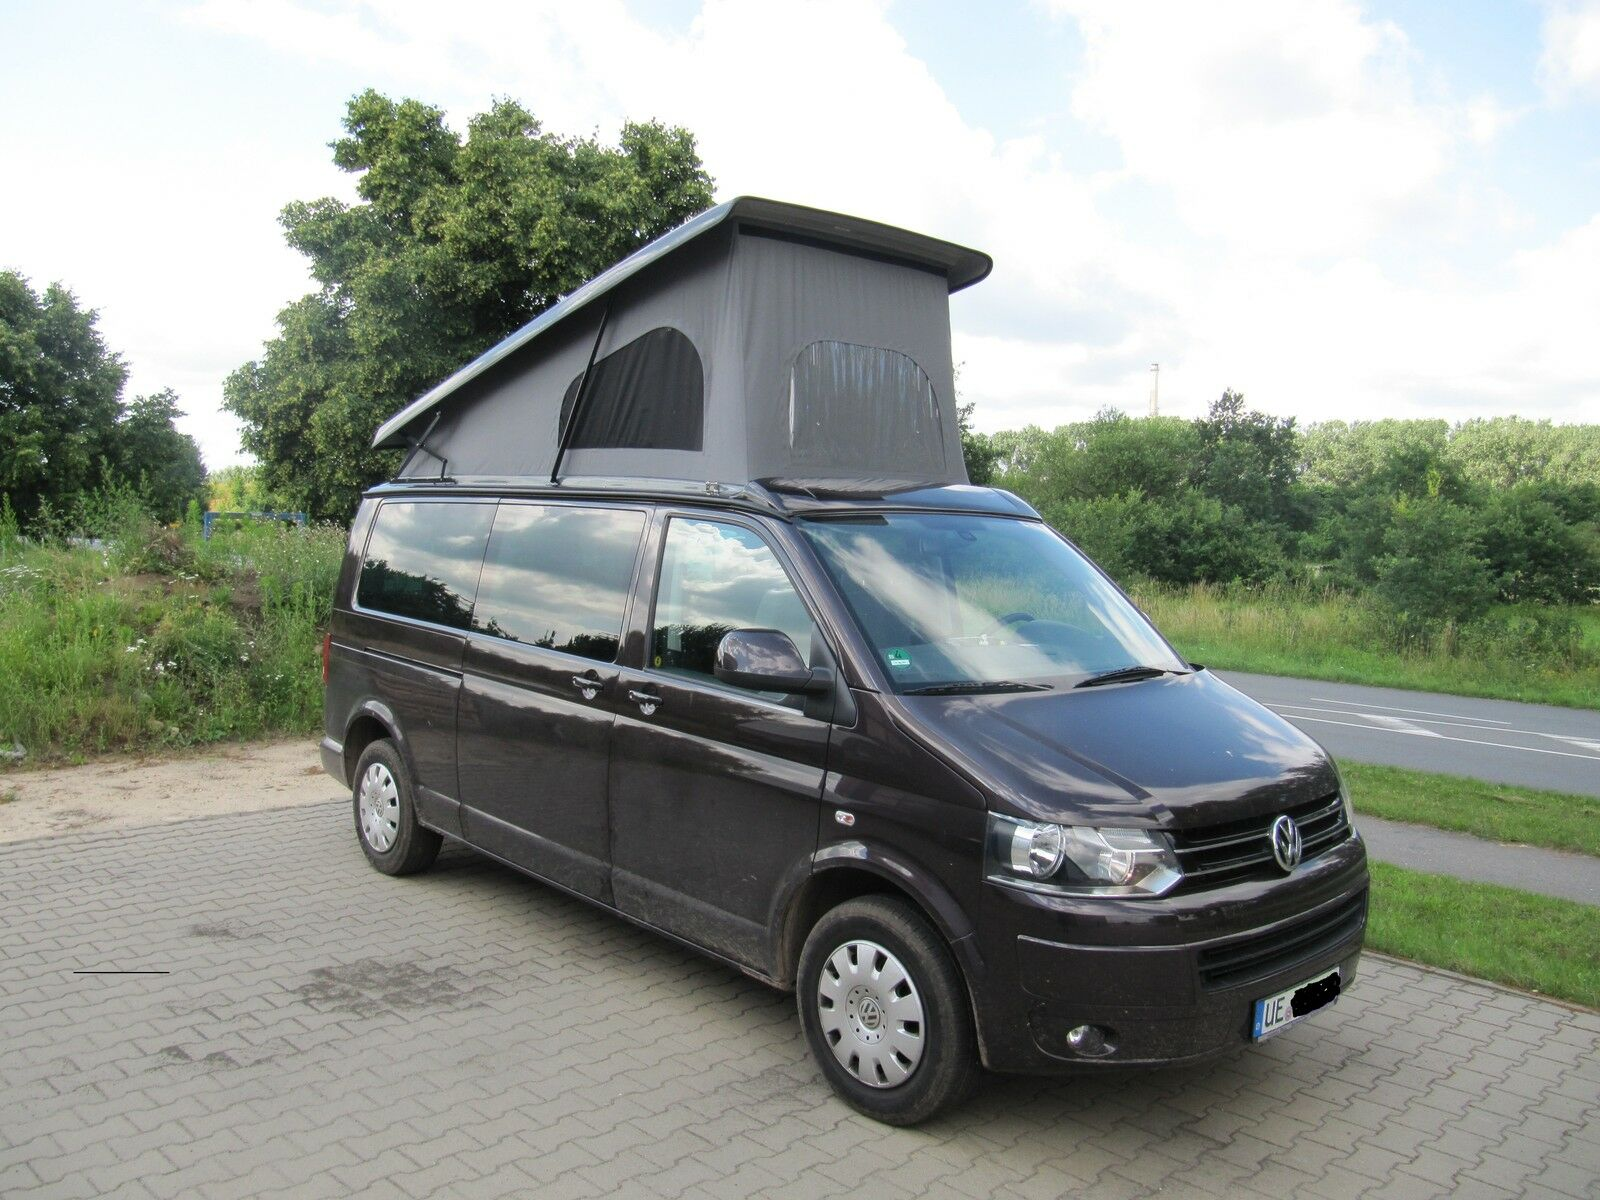 aufstelldach schlafdach vw t5 t6 multivan langer radstand eur picclick de. Black Bedroom Furniture Sets. Home Design Ideas